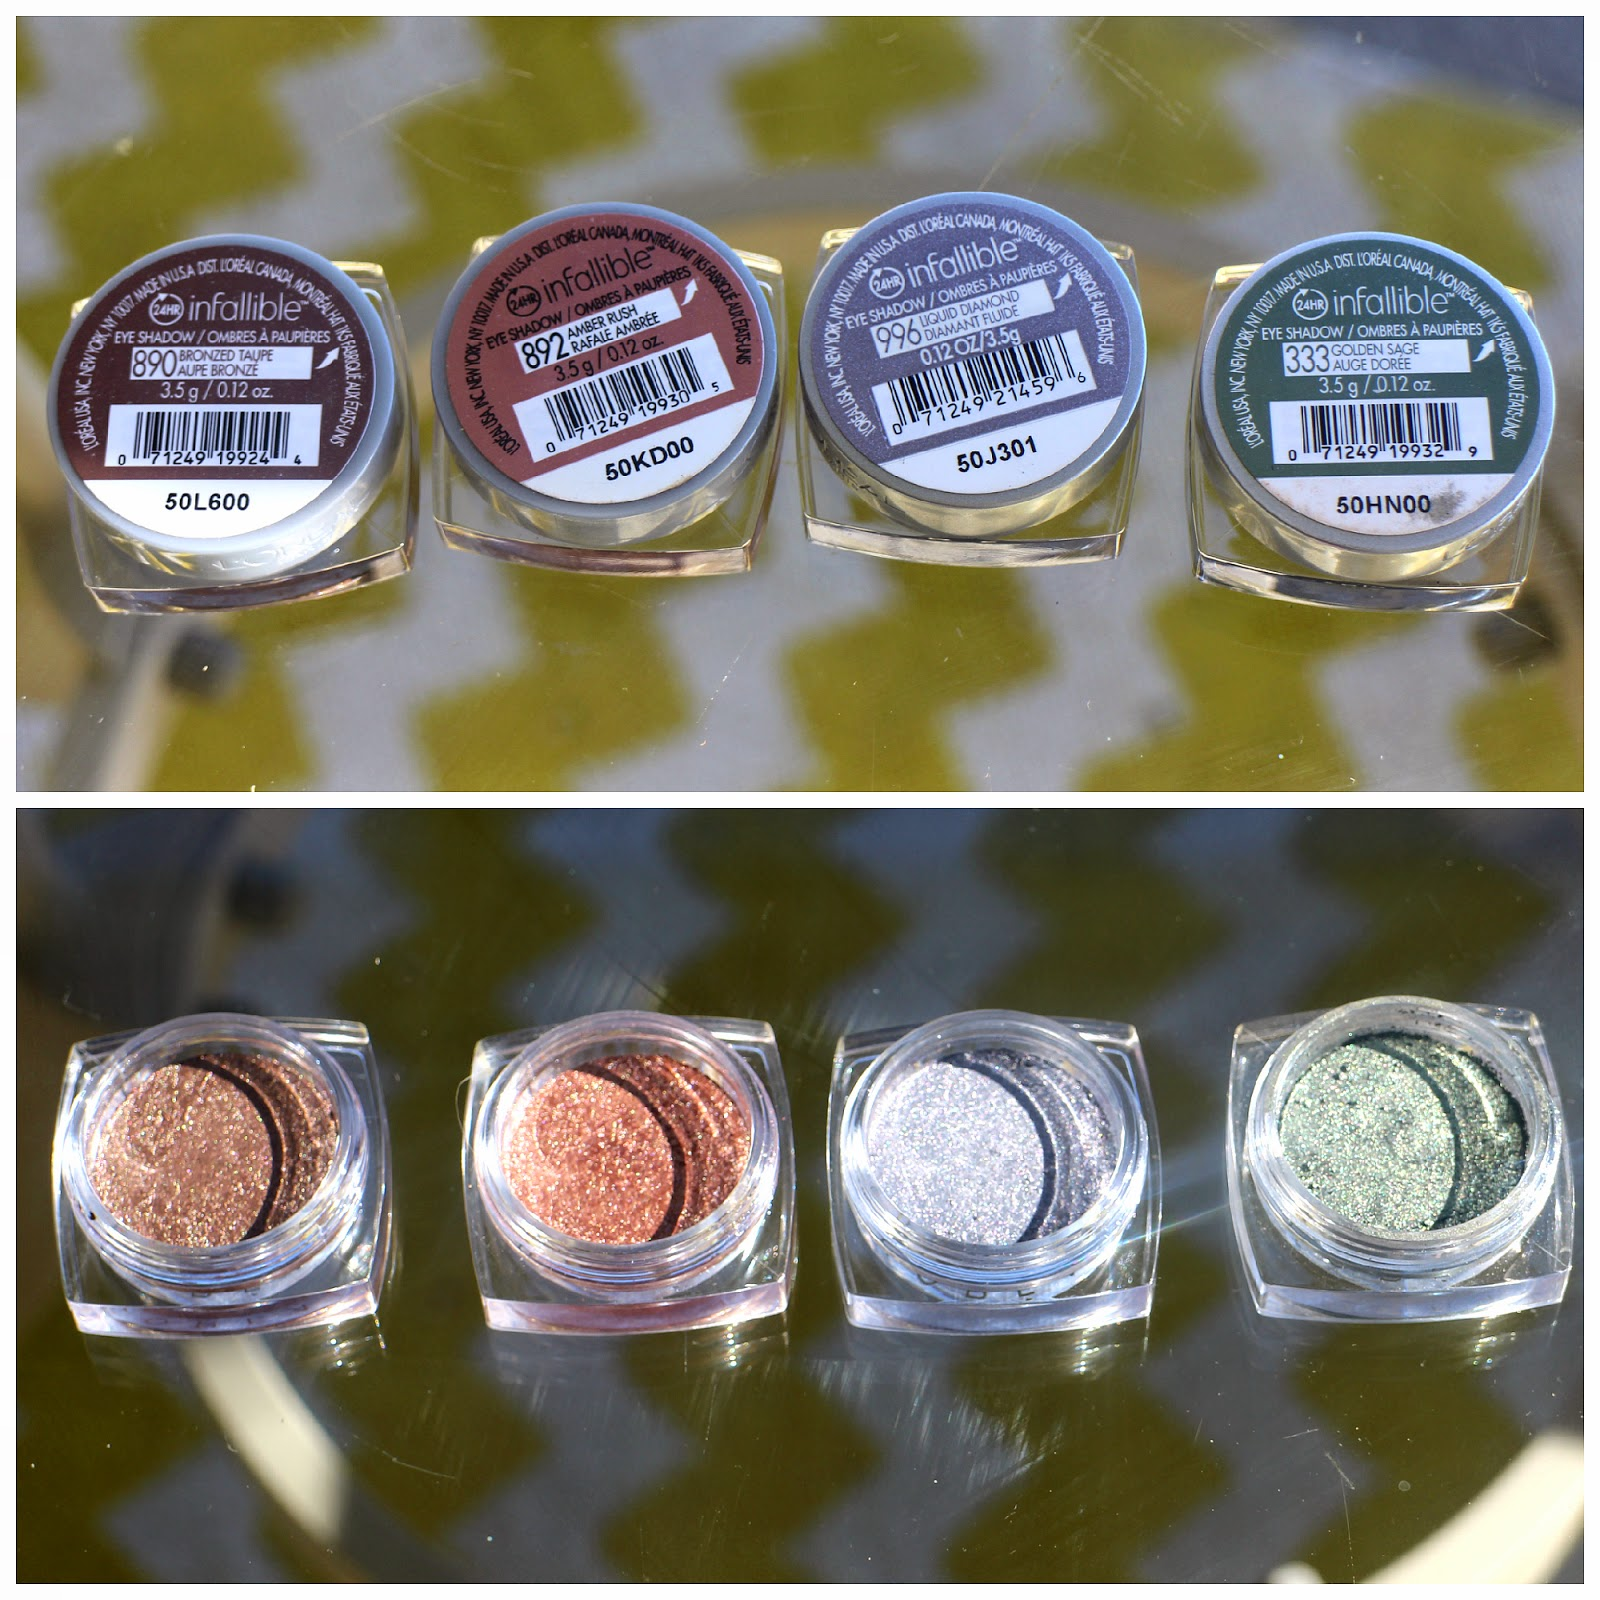 L'Oreal Paris Infallible Eyeshadows